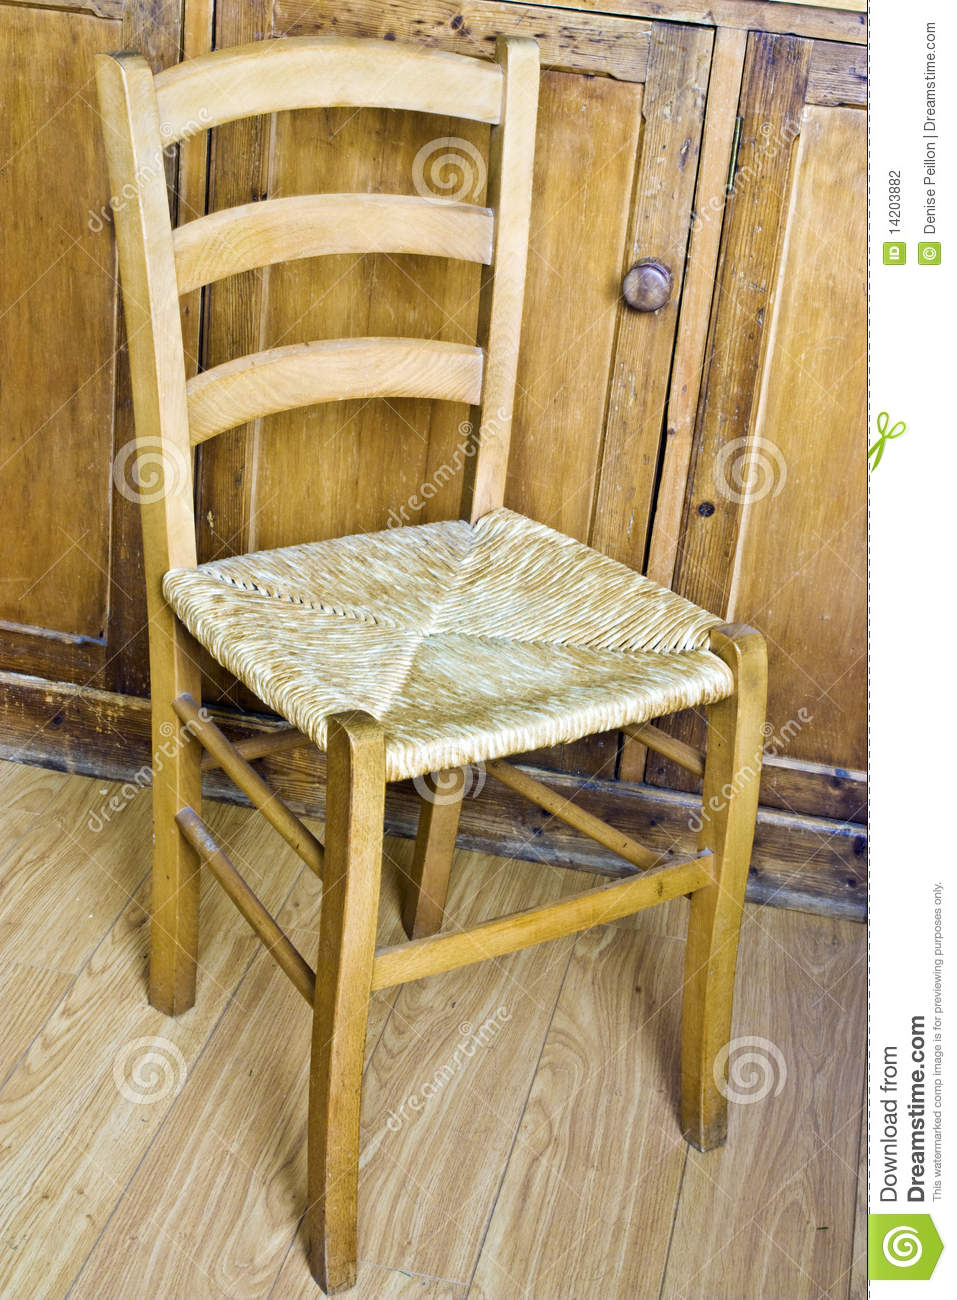 Wood and wicker chair stock photo image of wicker wood for Sillones de rattan